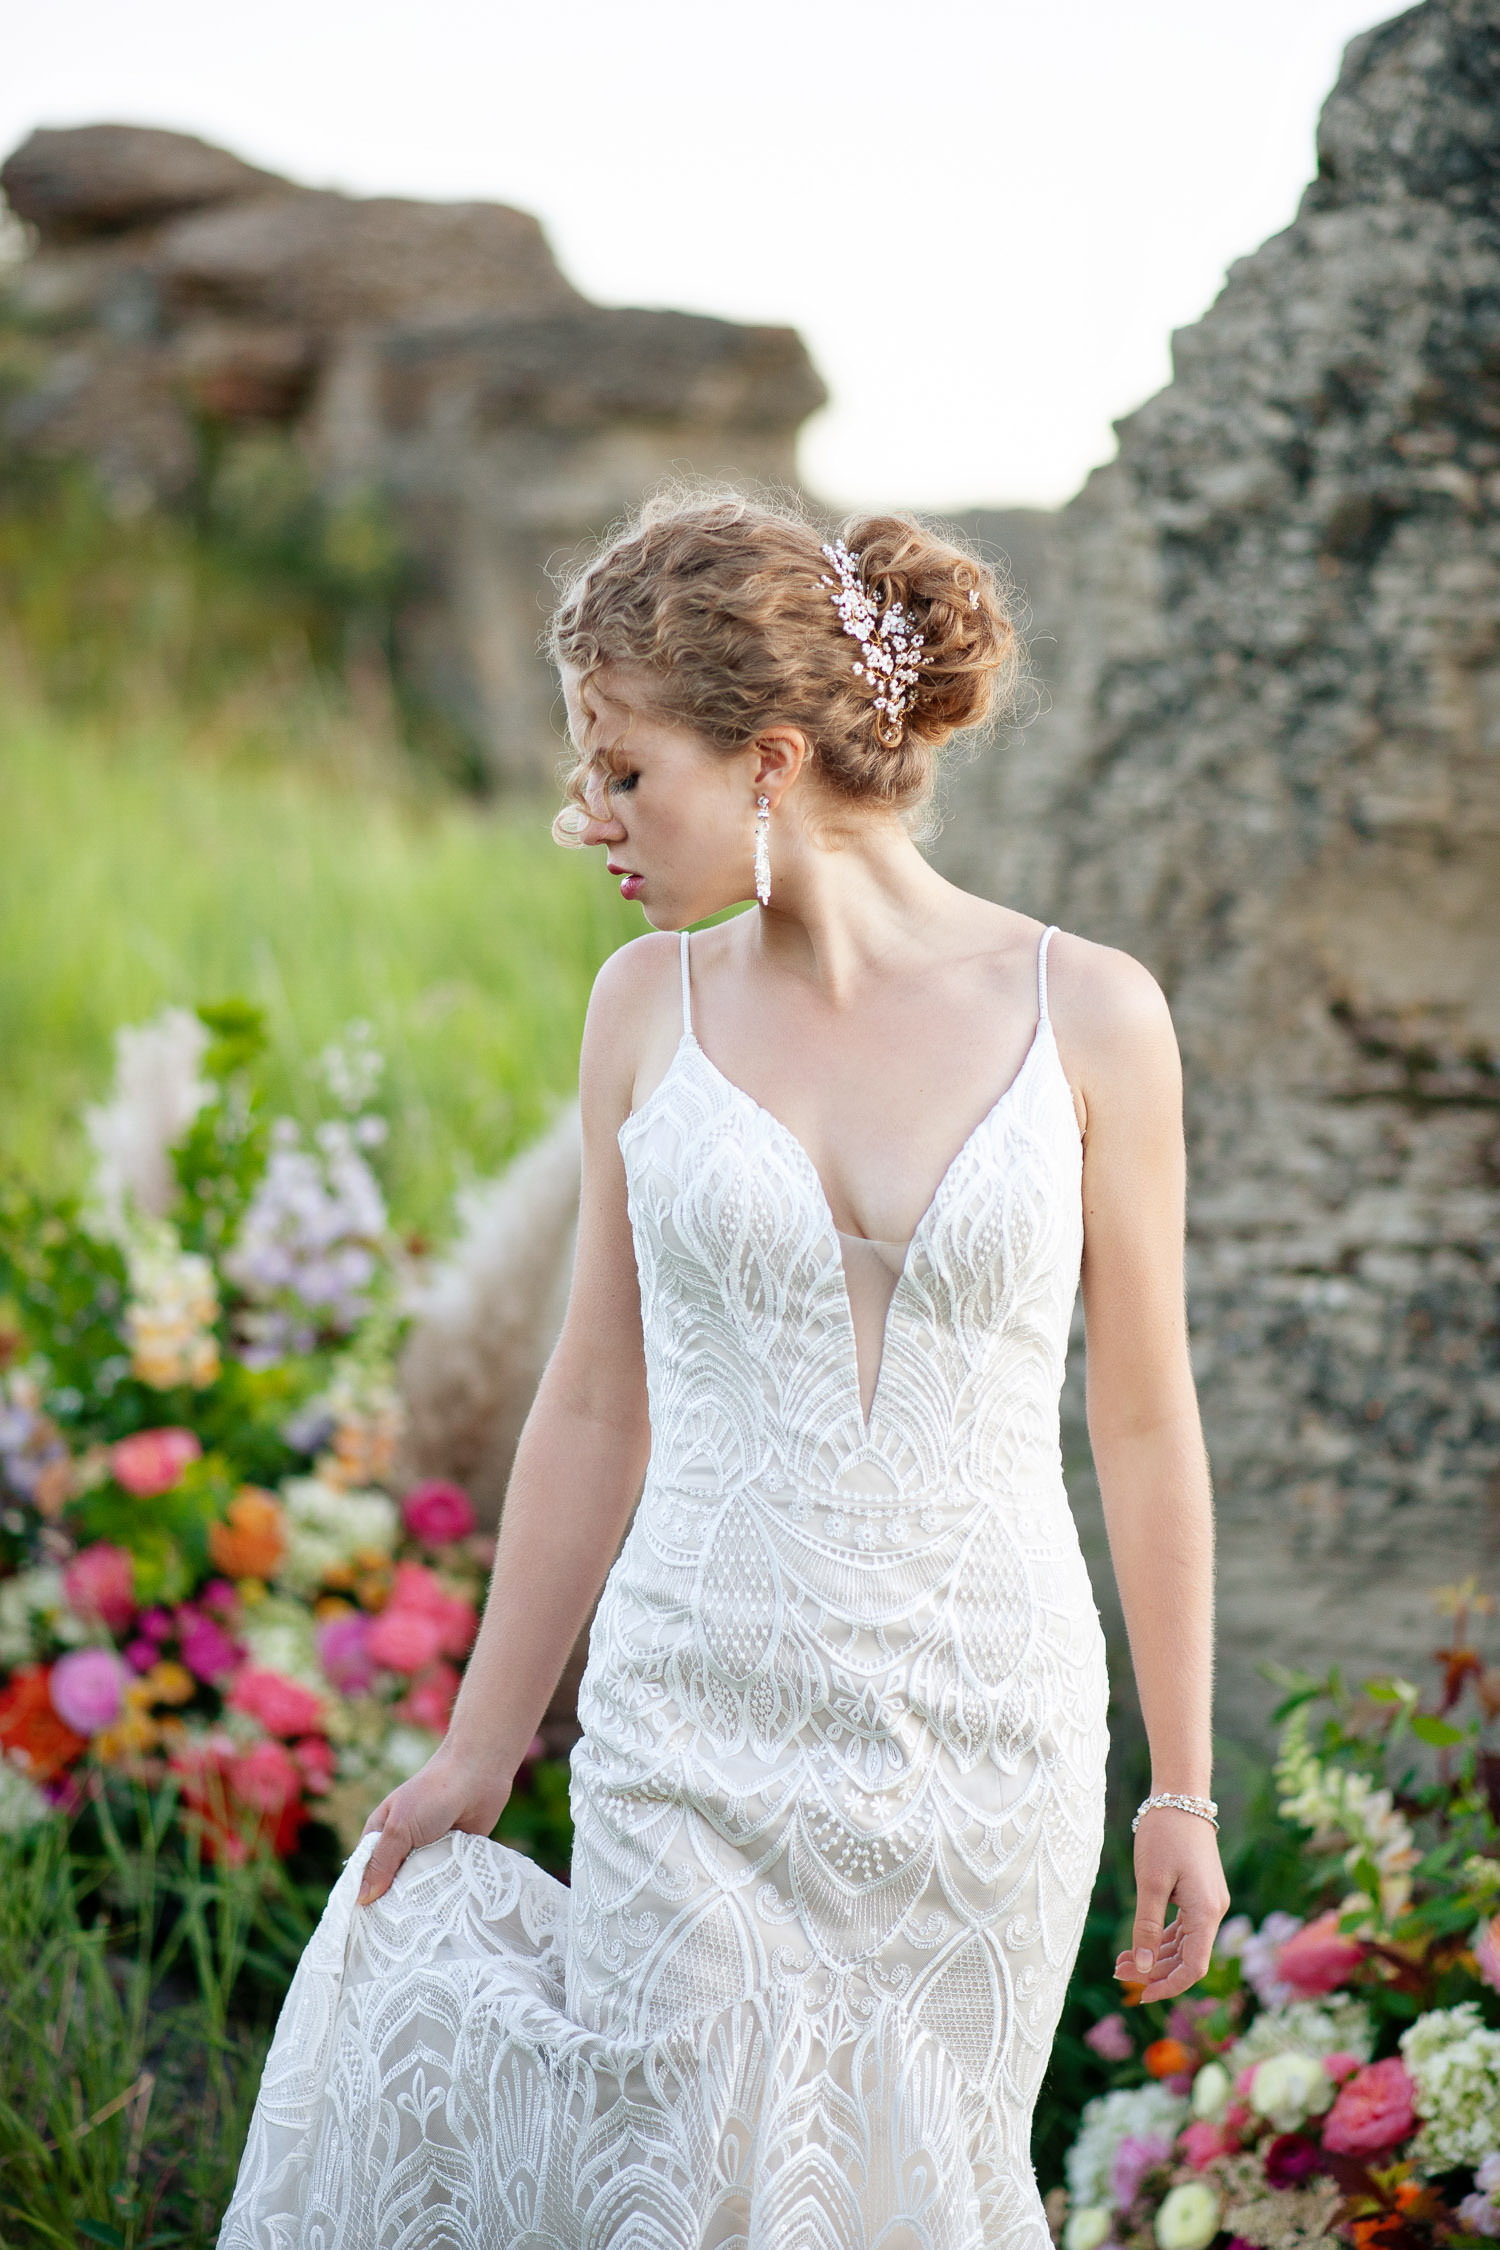 bride wearing a pearl headpieces by Joanna Bisley Design captured by Tara Whittaker Photography